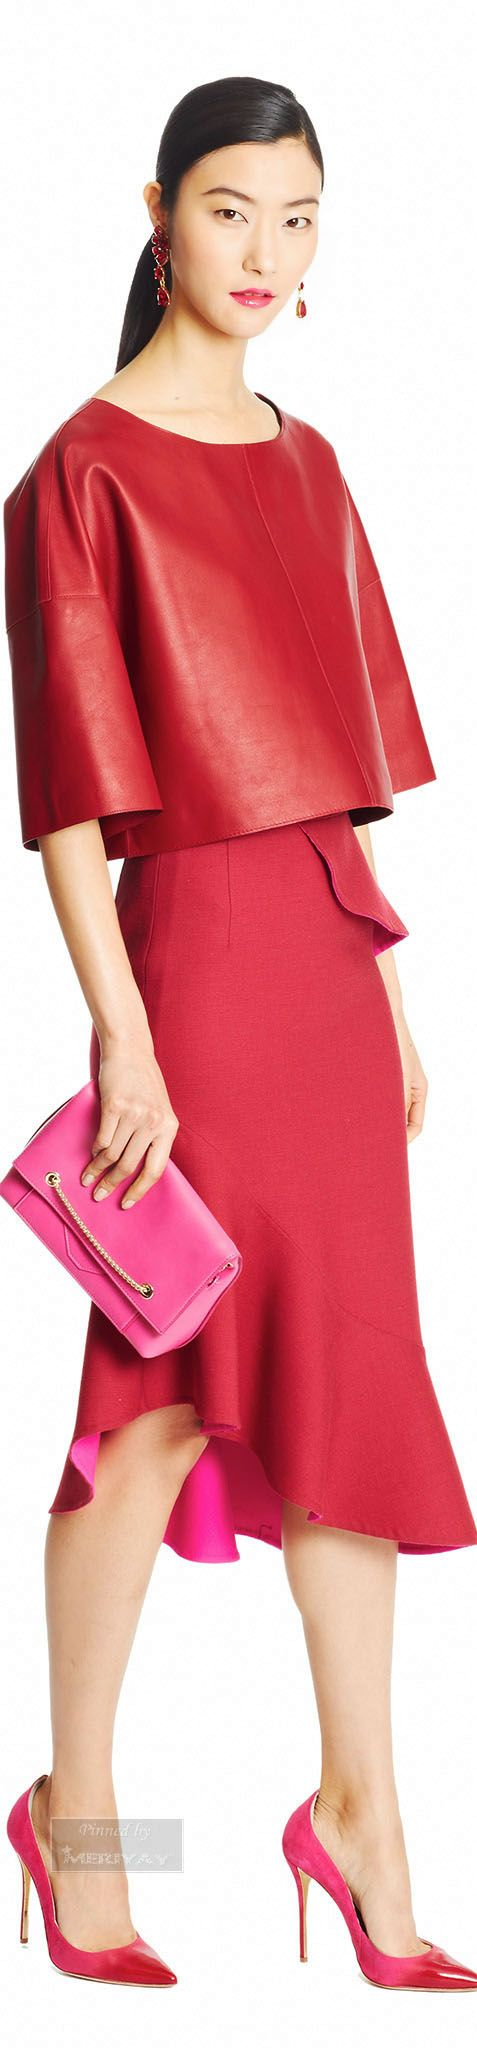 Oscar de la Renta.Pre-Fall 2015. Red leather top with matching Red skirt and a pink clutch, perfectly matching contrast